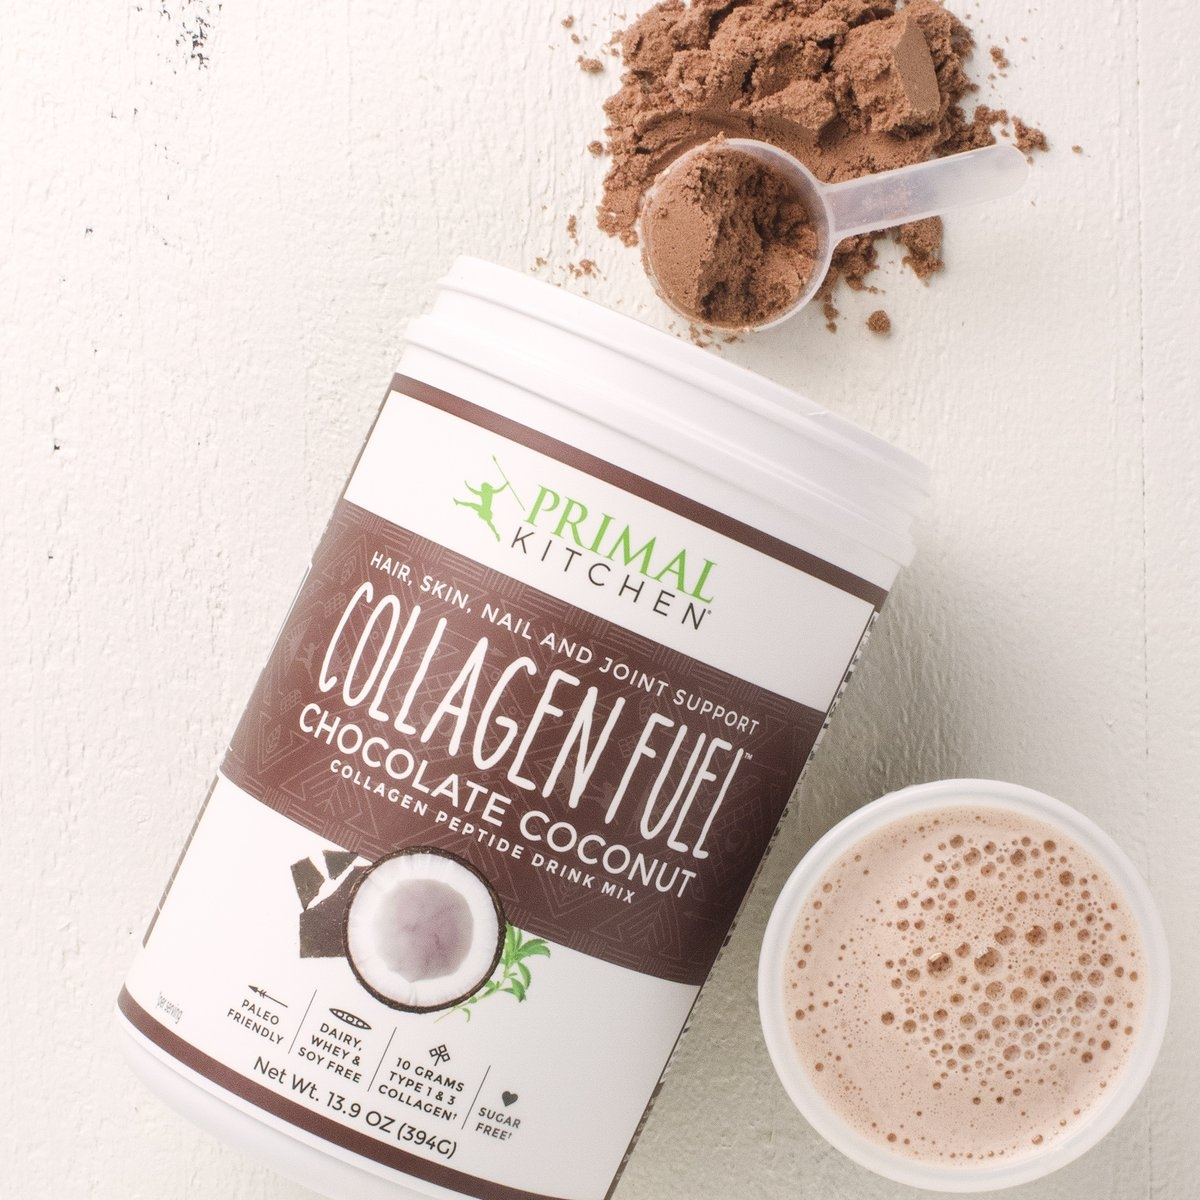 Whole30 + Paleo Collagen Fuel™ - Chocolate | Kind Gift Guide akindjourney.com